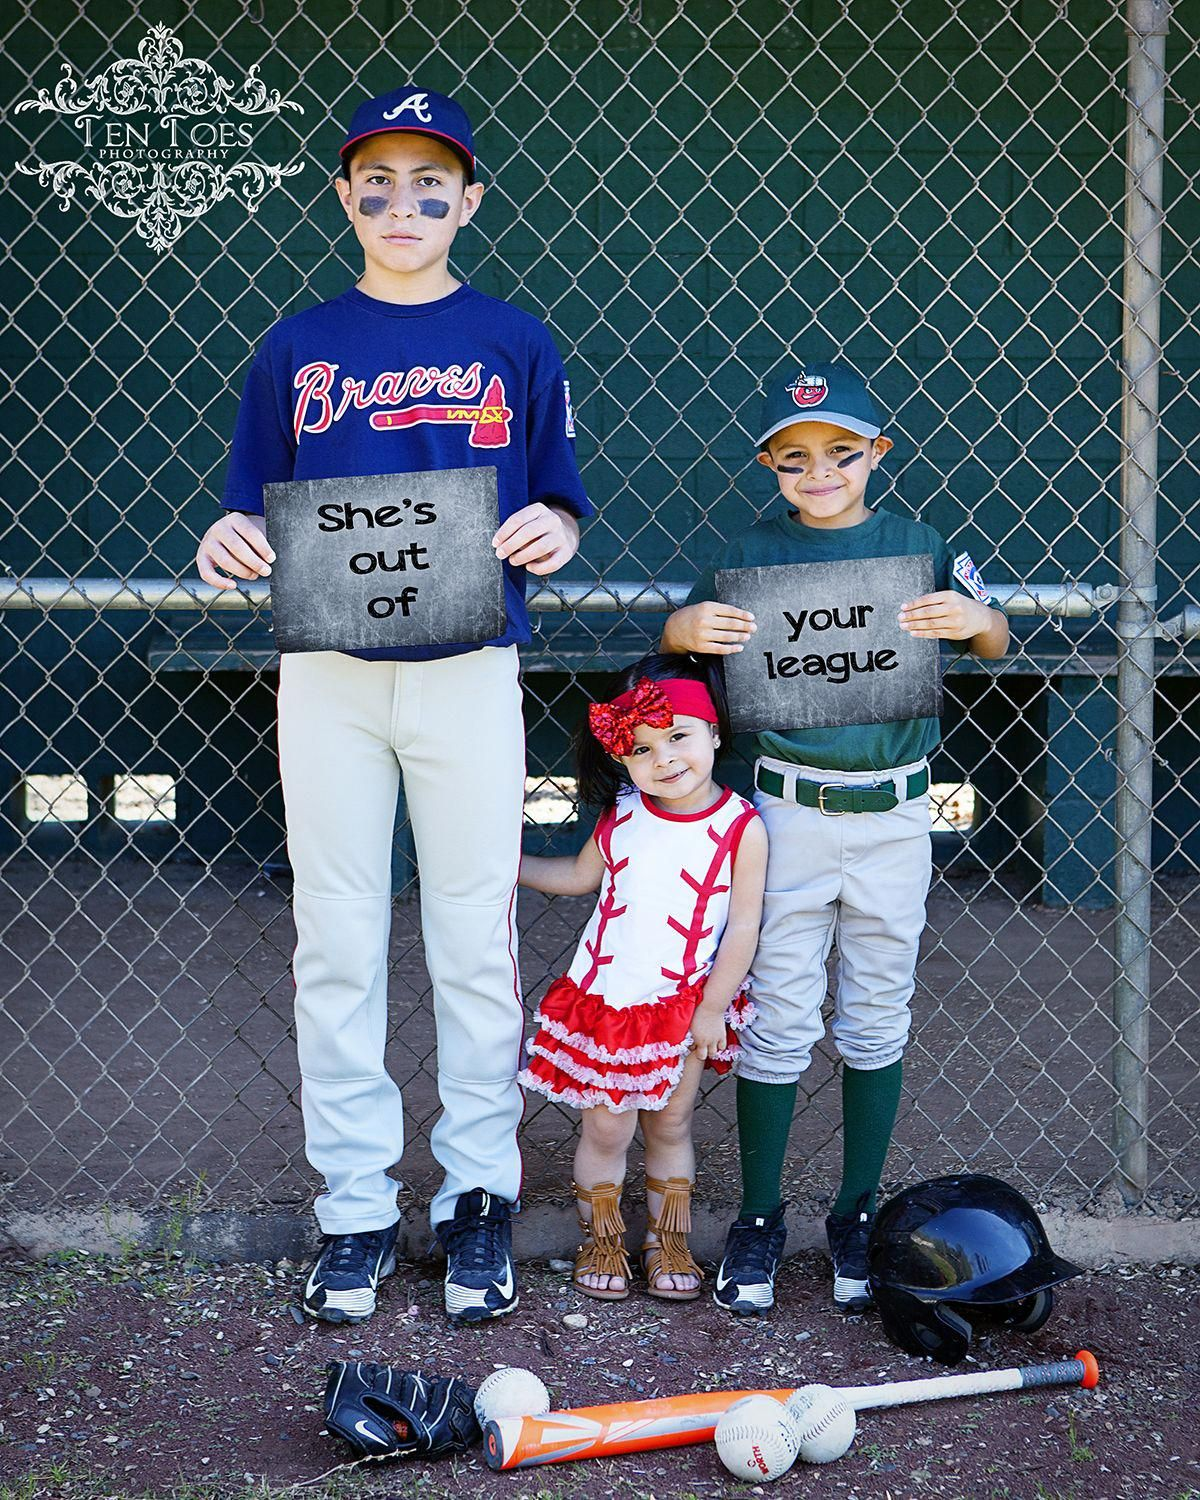 She S Out Of Your League Family Kids Baseball Photography Pose Baseballpictures Baseball Photography Baseball Family Sibling Pictures